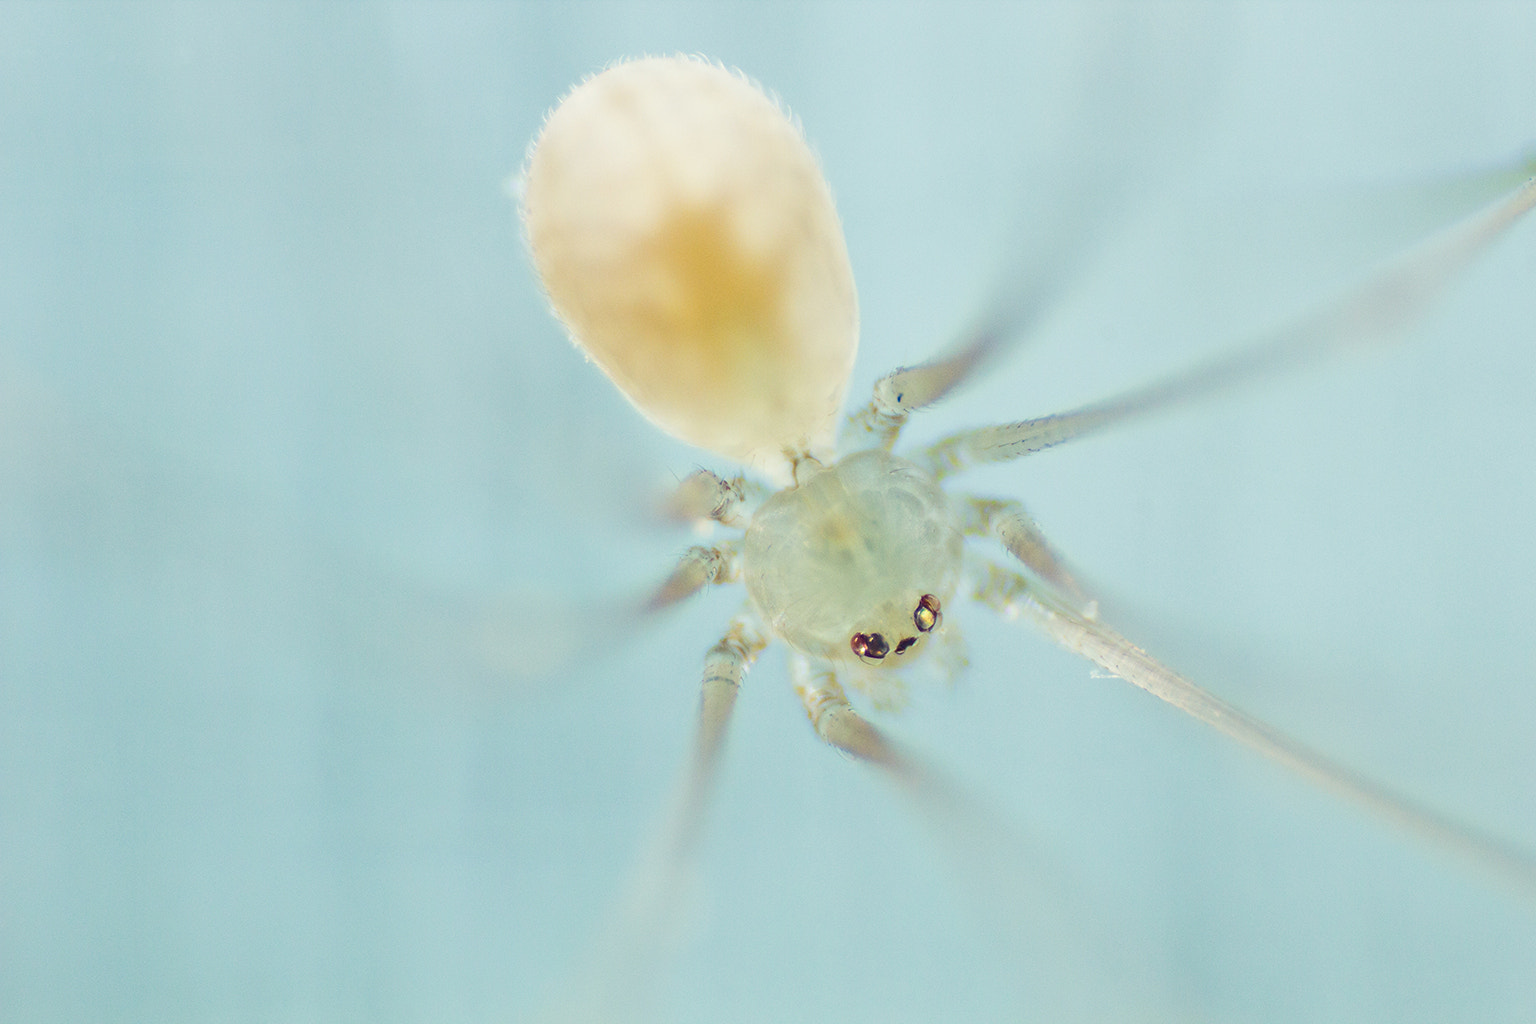 Photograph Spider Pholcus by Hatoripingjung Khong on 500px